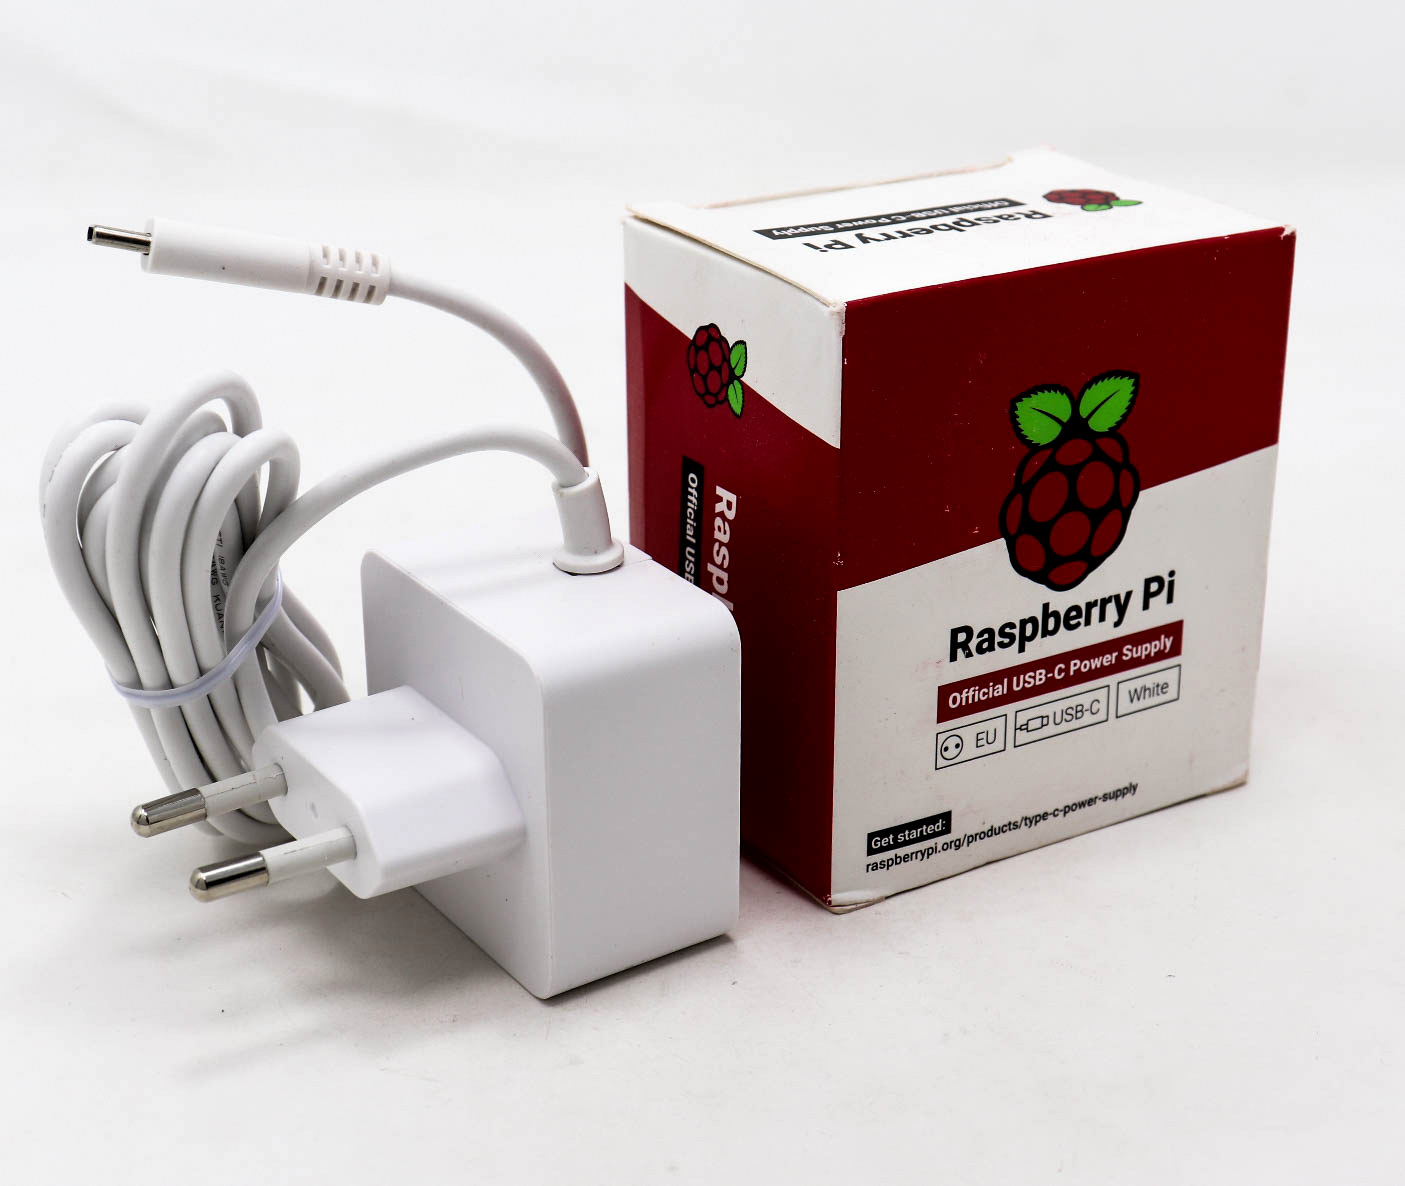 Raspberry Pi Boards & Official Accessories